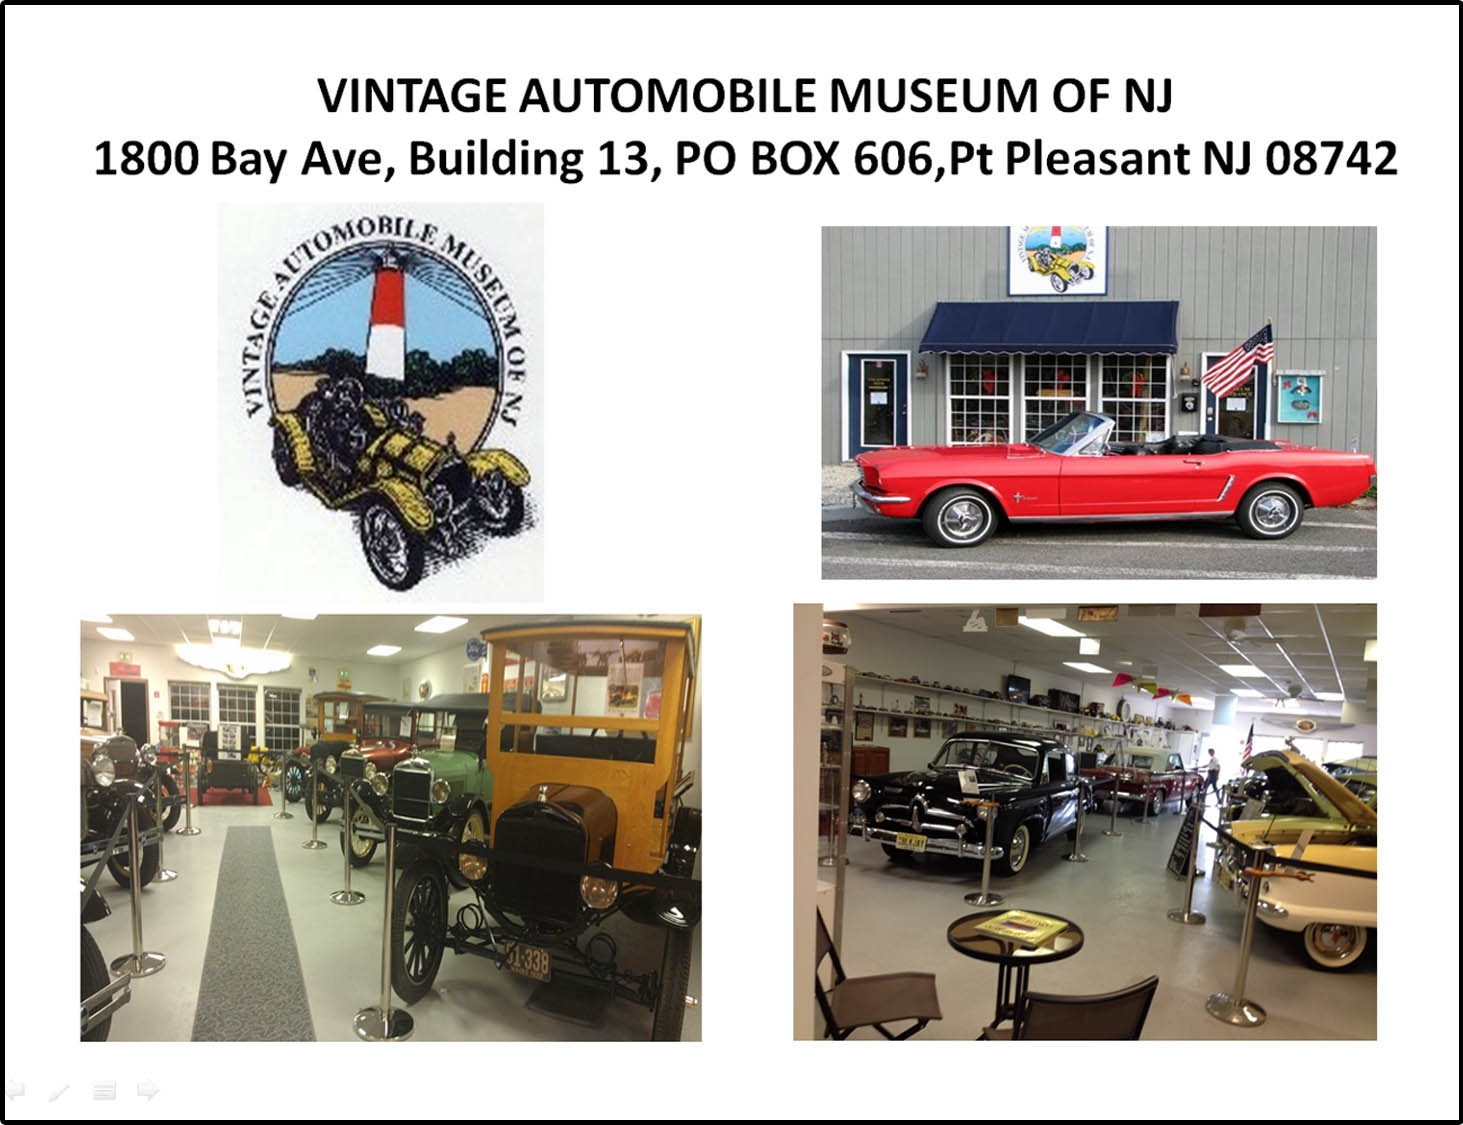 Vintage Automobile Museum of New Jersey